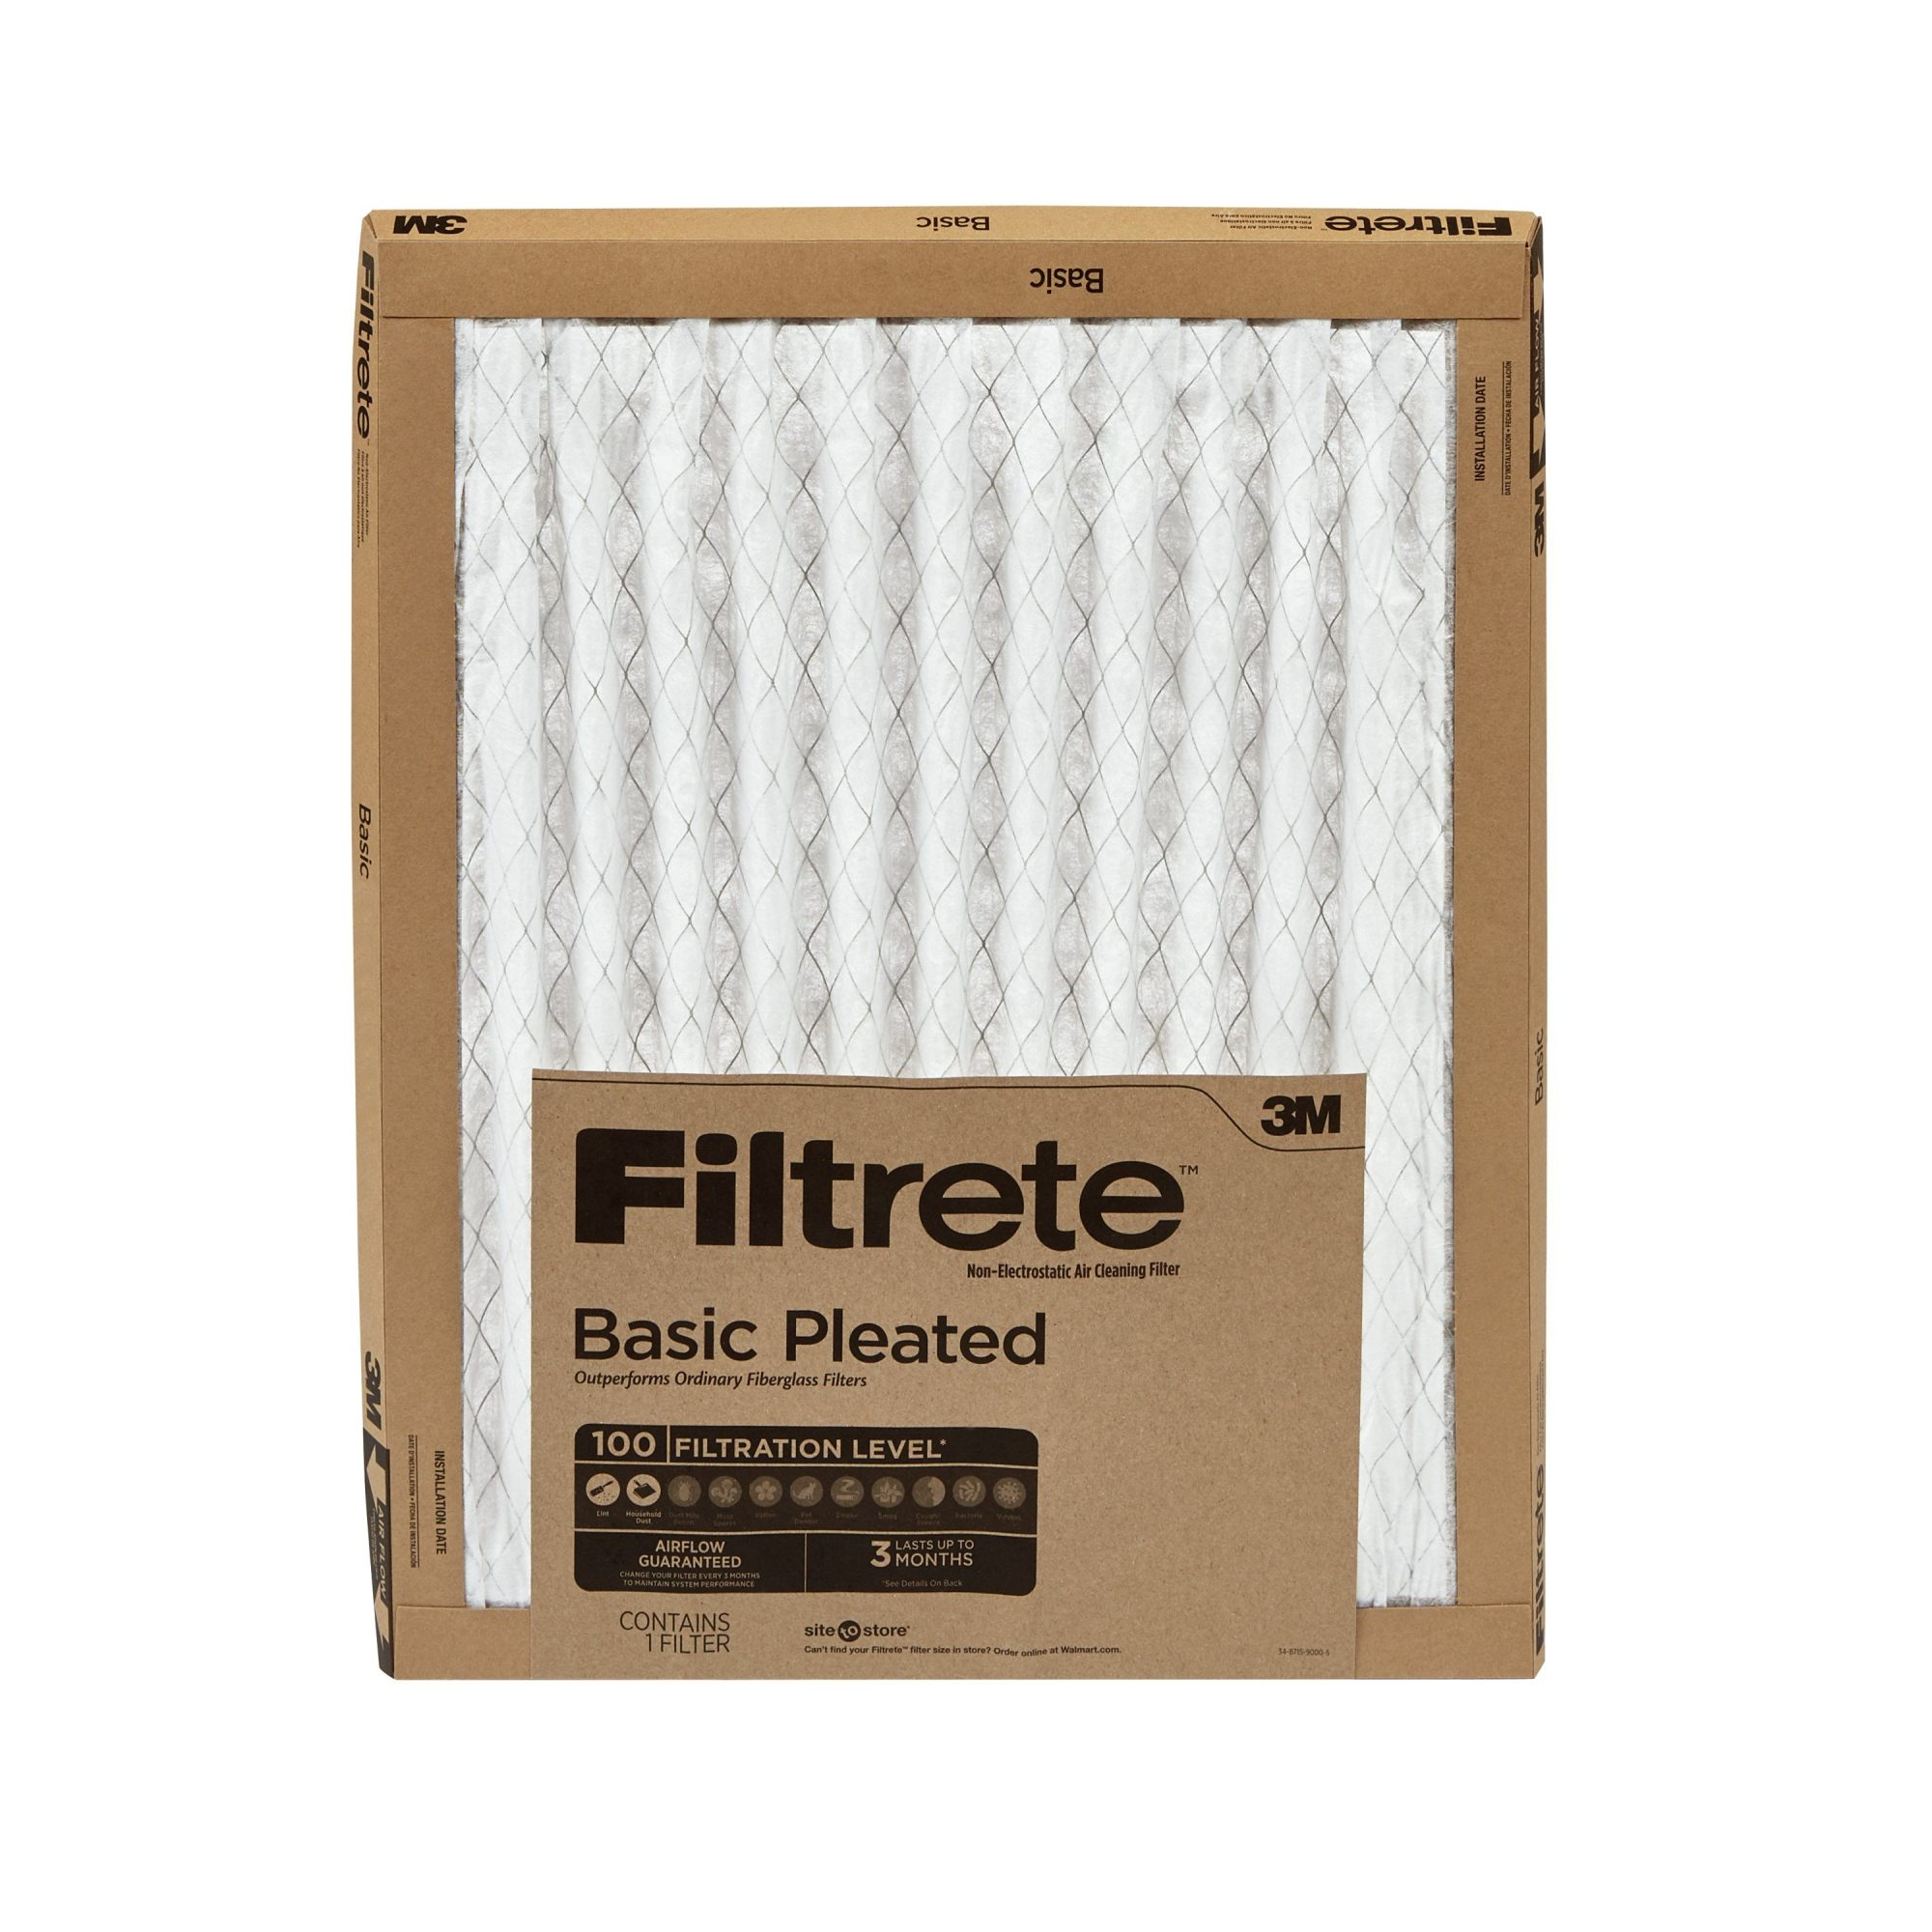 hight resolution of filtrete 12x12x1 filtrete basic pleated hvac furnace air filter 100 mpr 1 filter